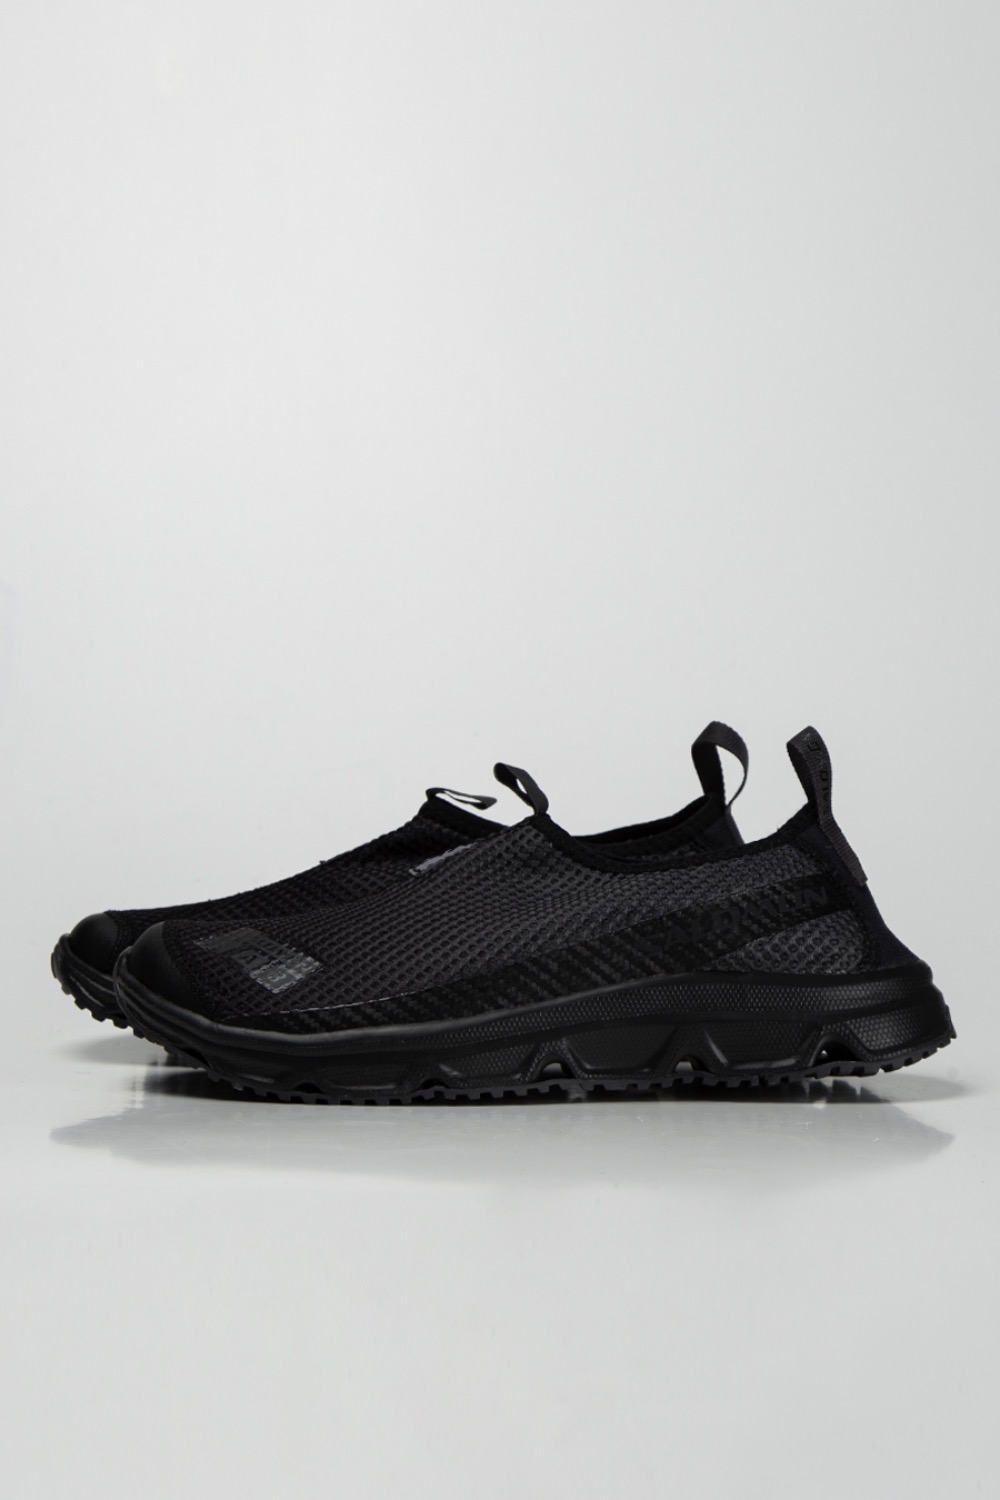 RX MOC 3.0 ADVANCED BLACK/BLACK/MAGNET